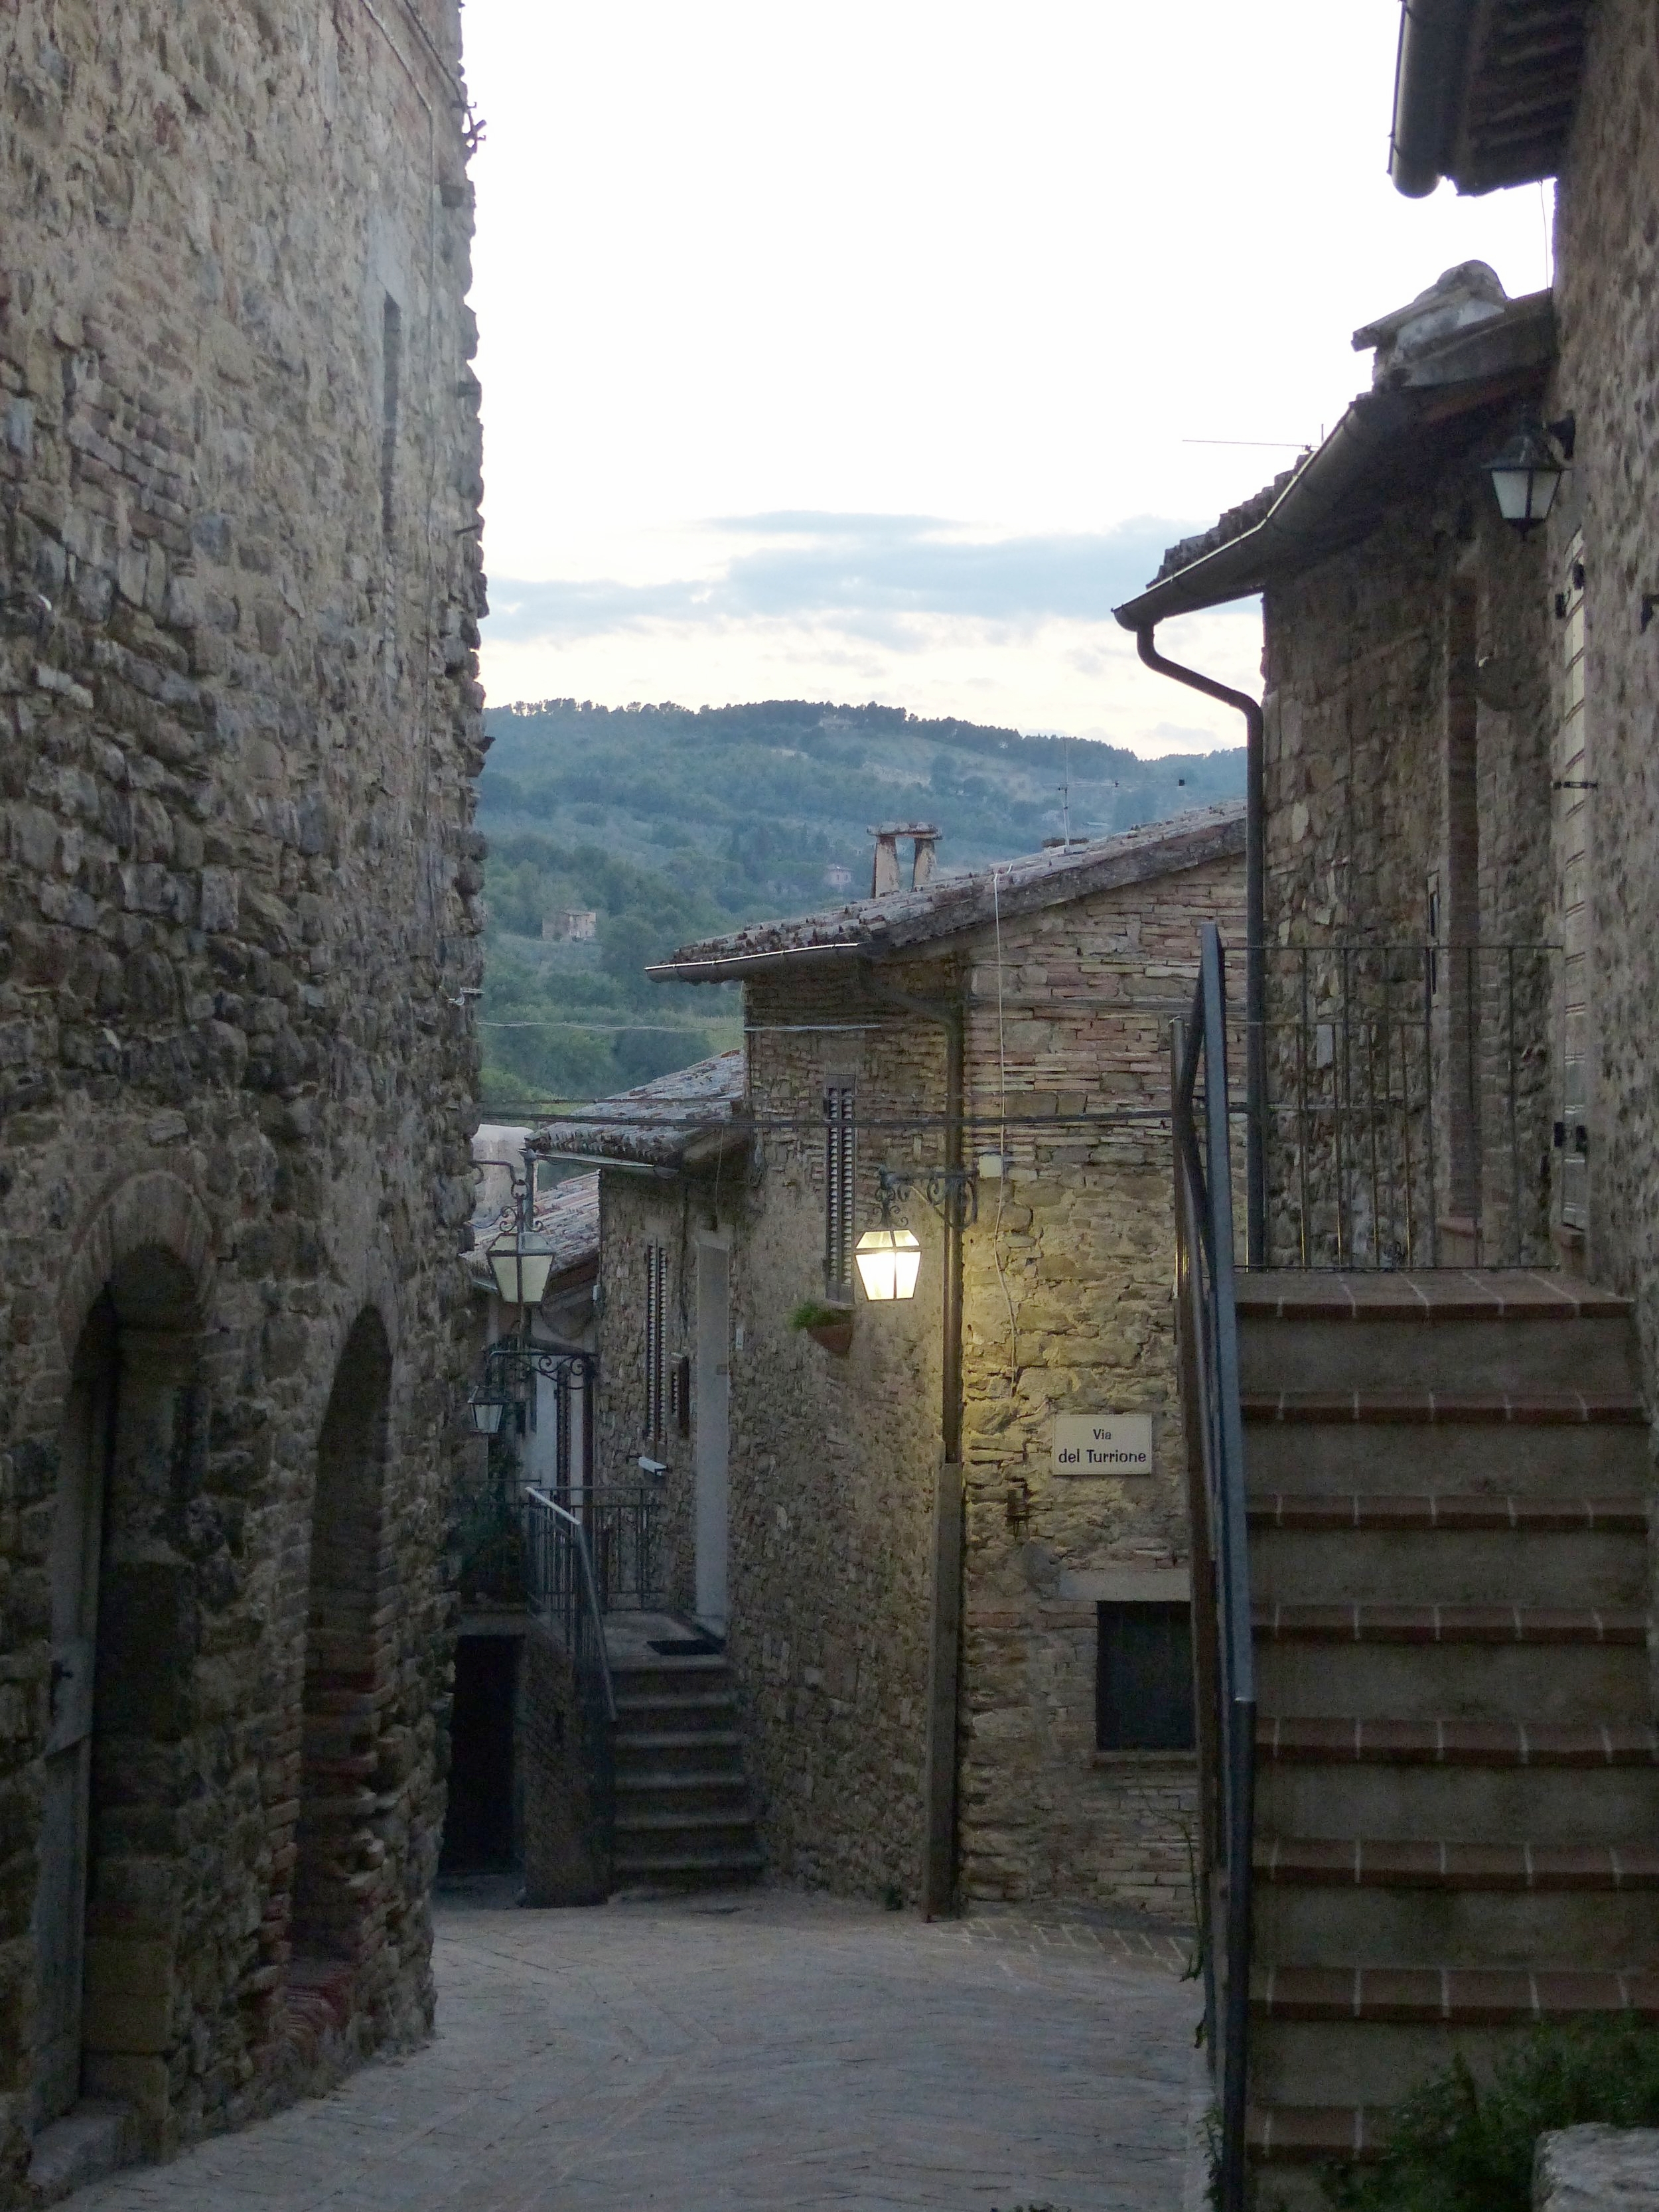 Night falls at Serpillo in Umbria